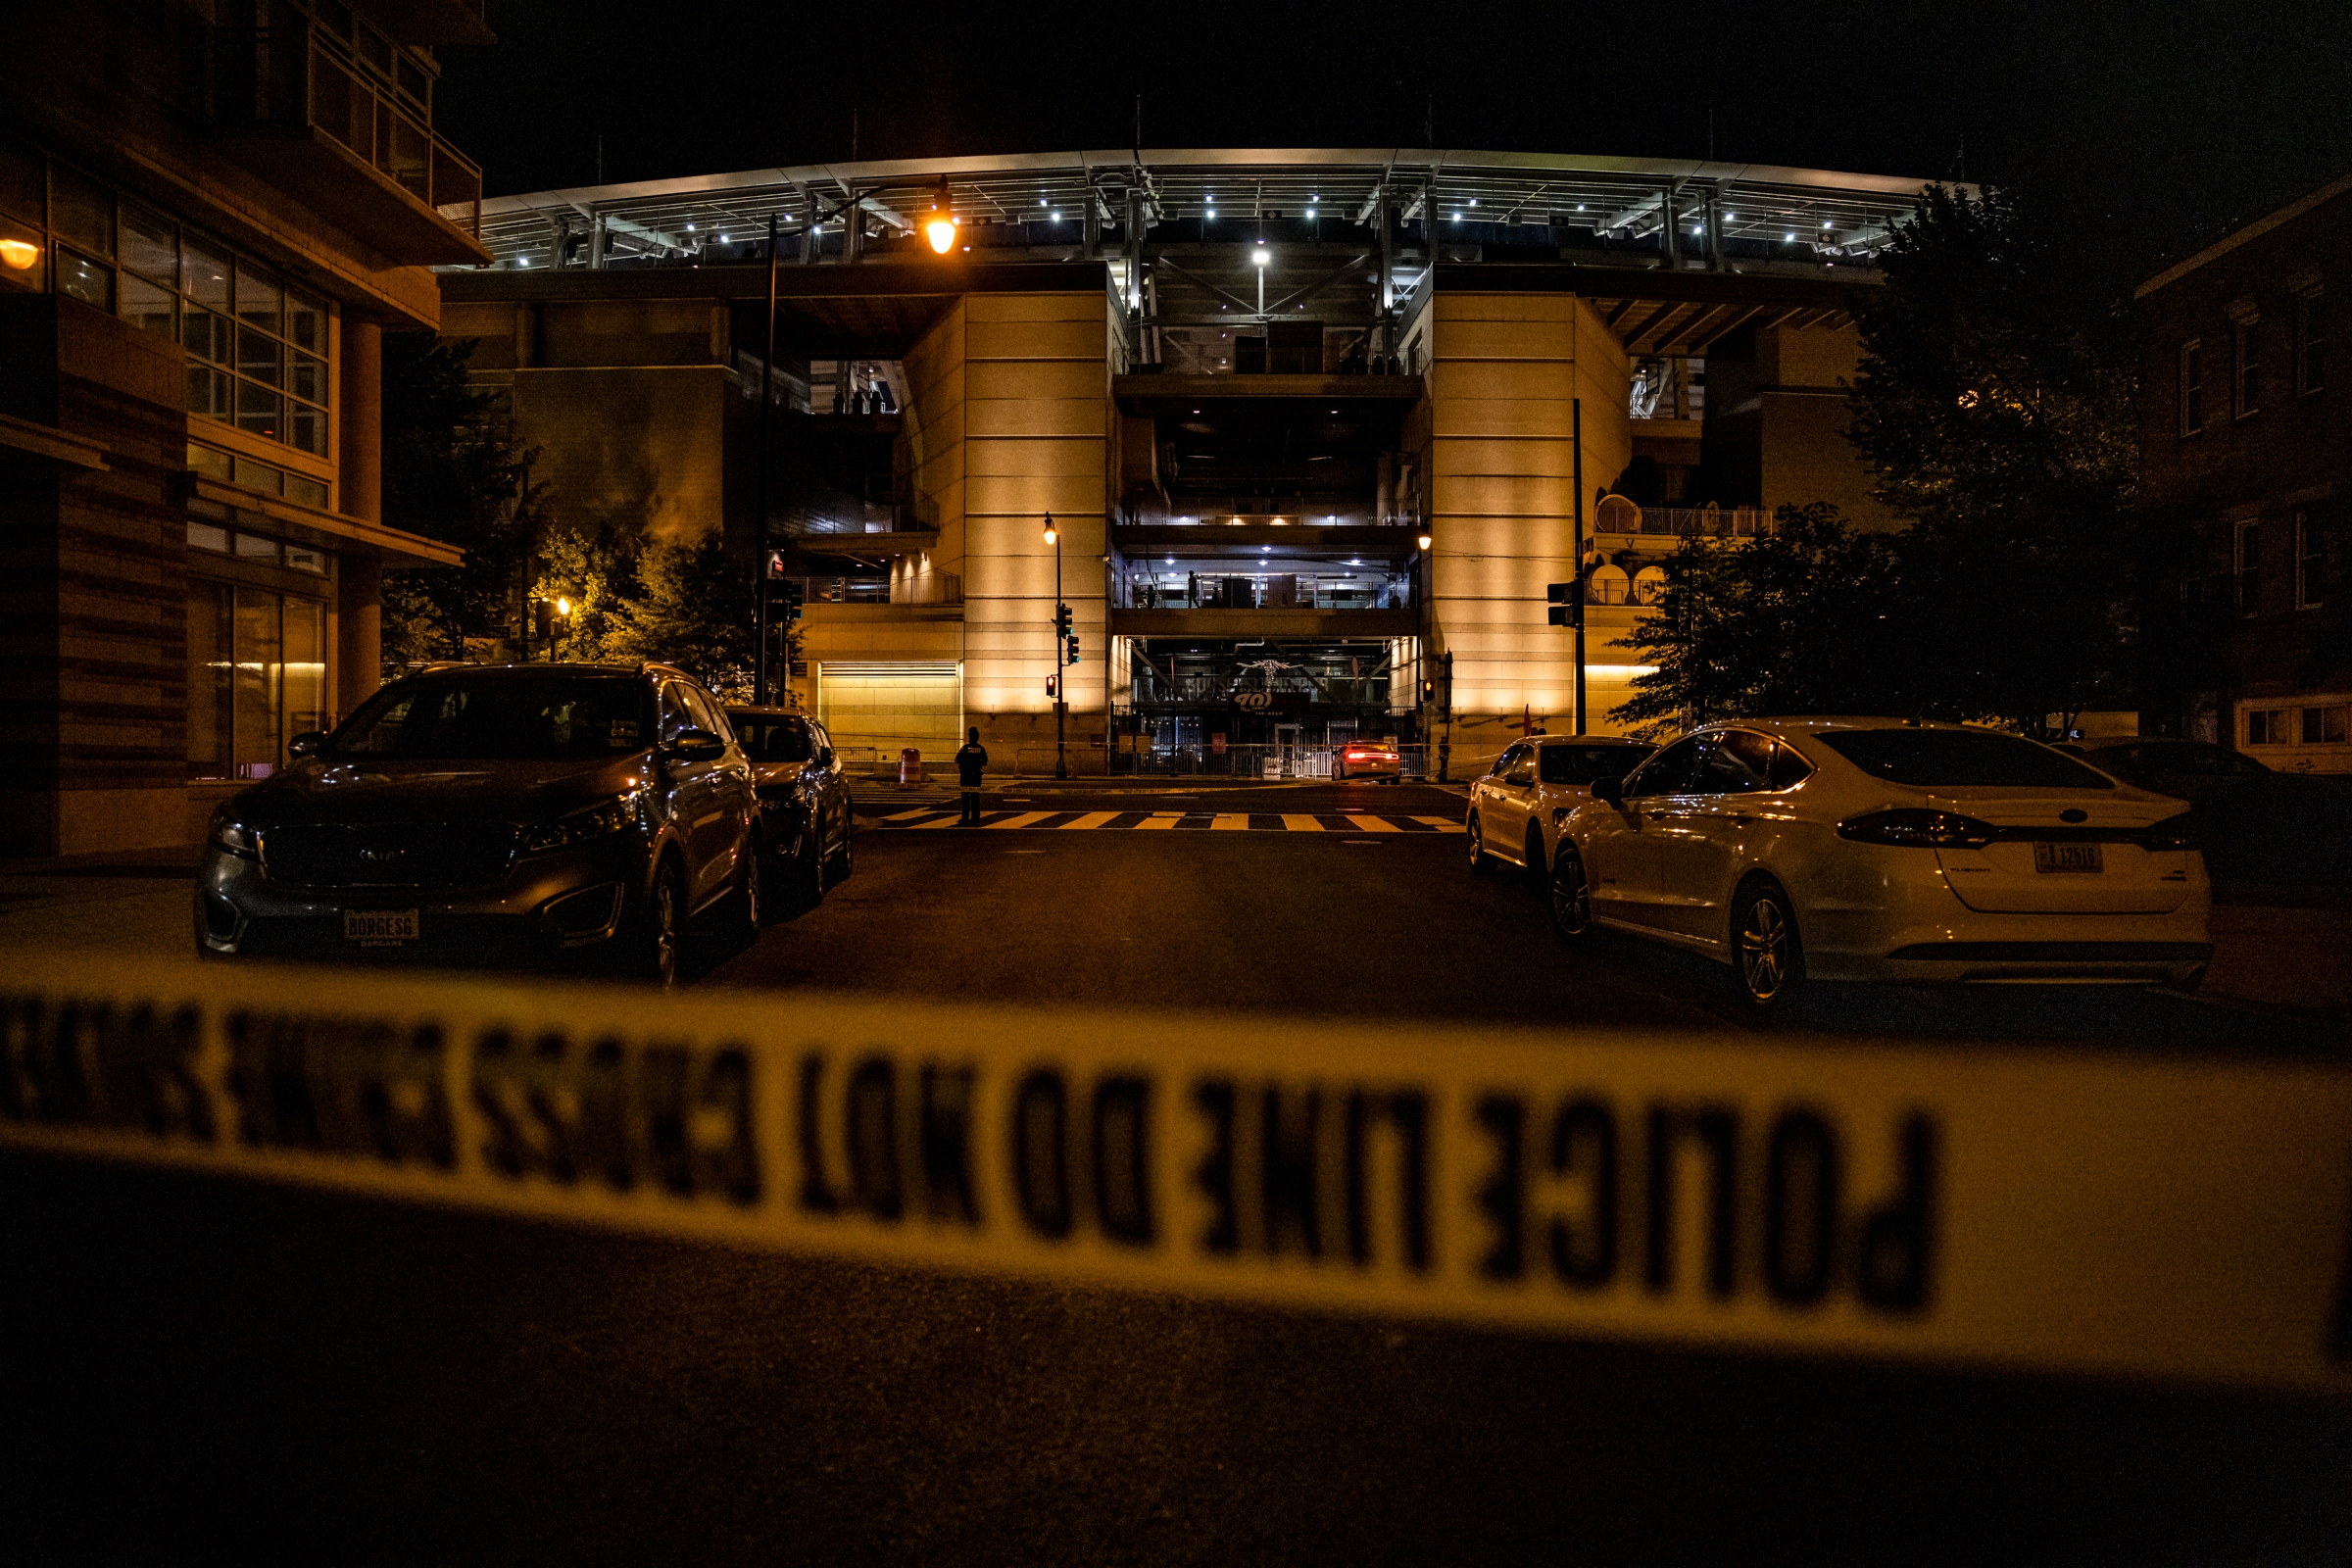 A photo of police tape and police cars in front of Nationals Park